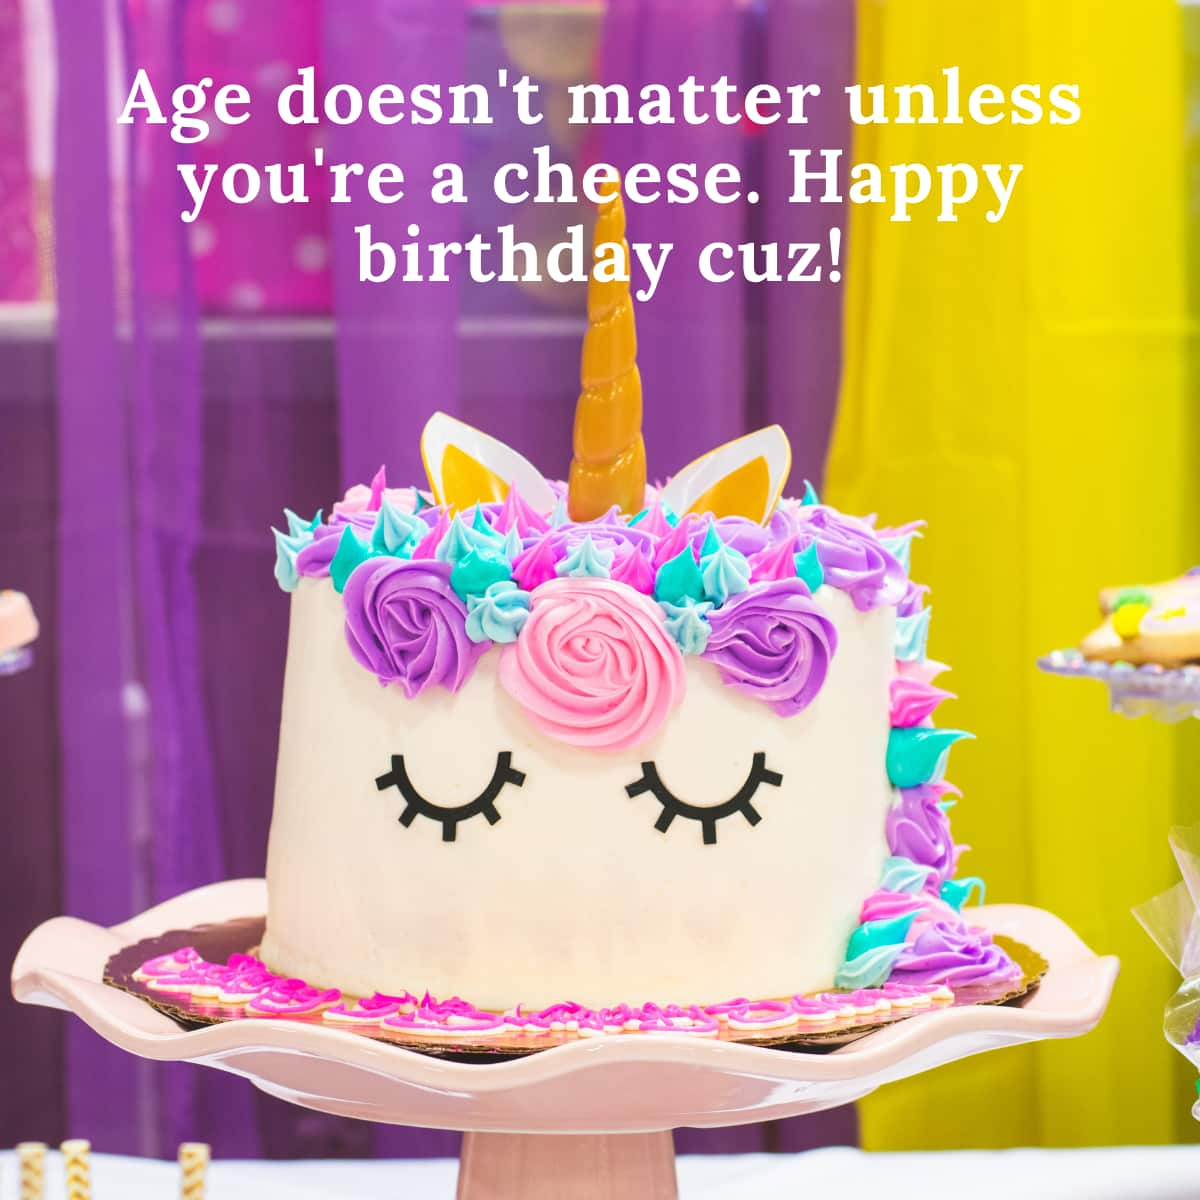 50 Amusing Happy Birthday Cousin Wishes Memes And Images Legit Ng